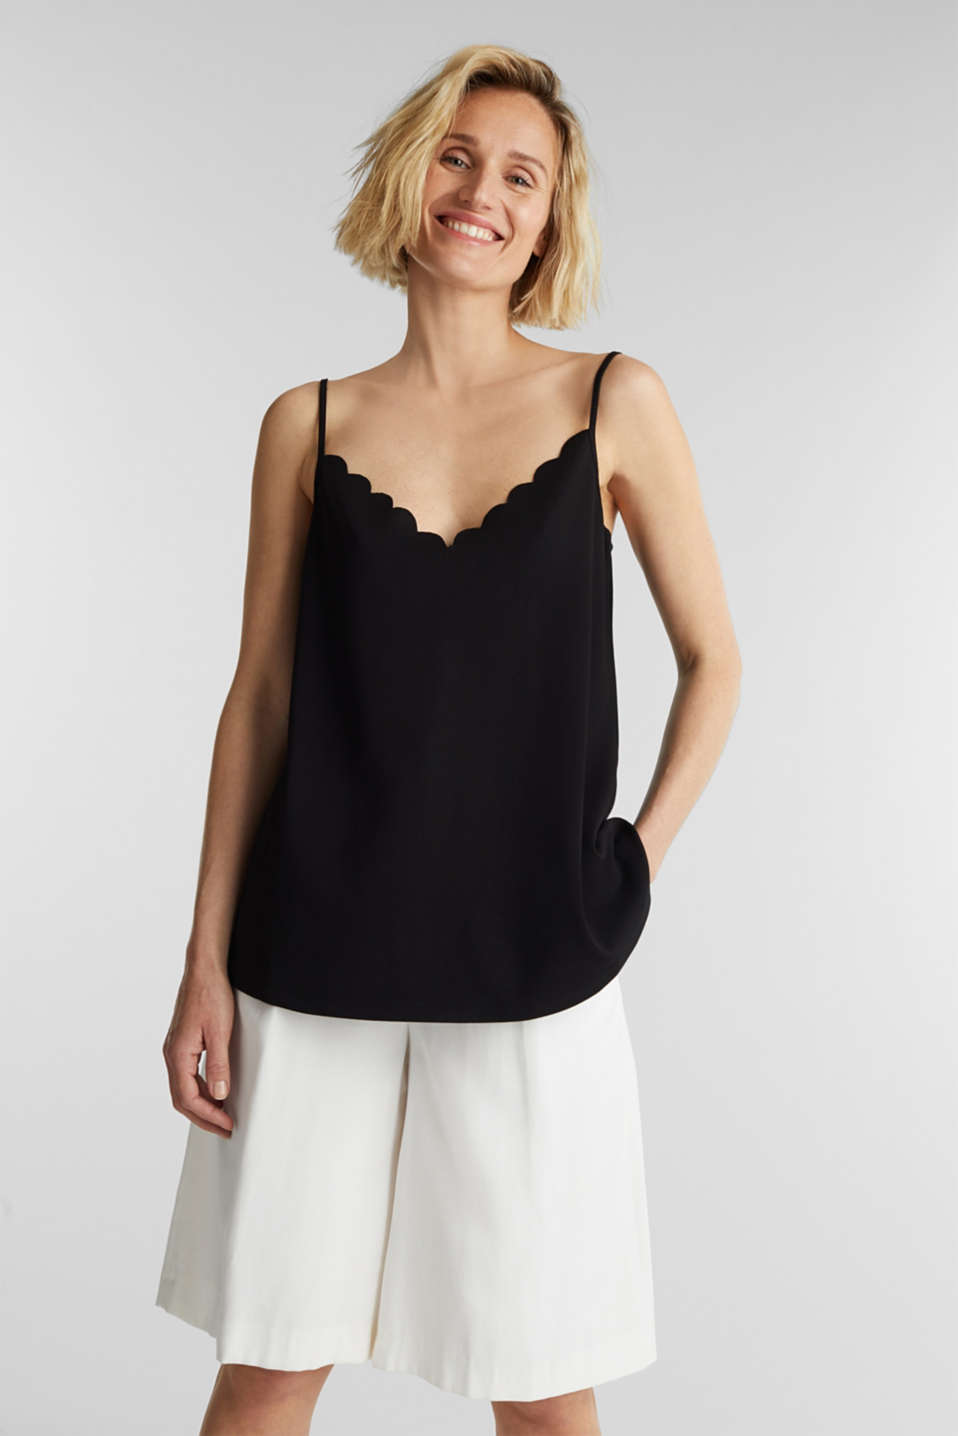 Esprit - Stretch jersey top with a scalloped edge